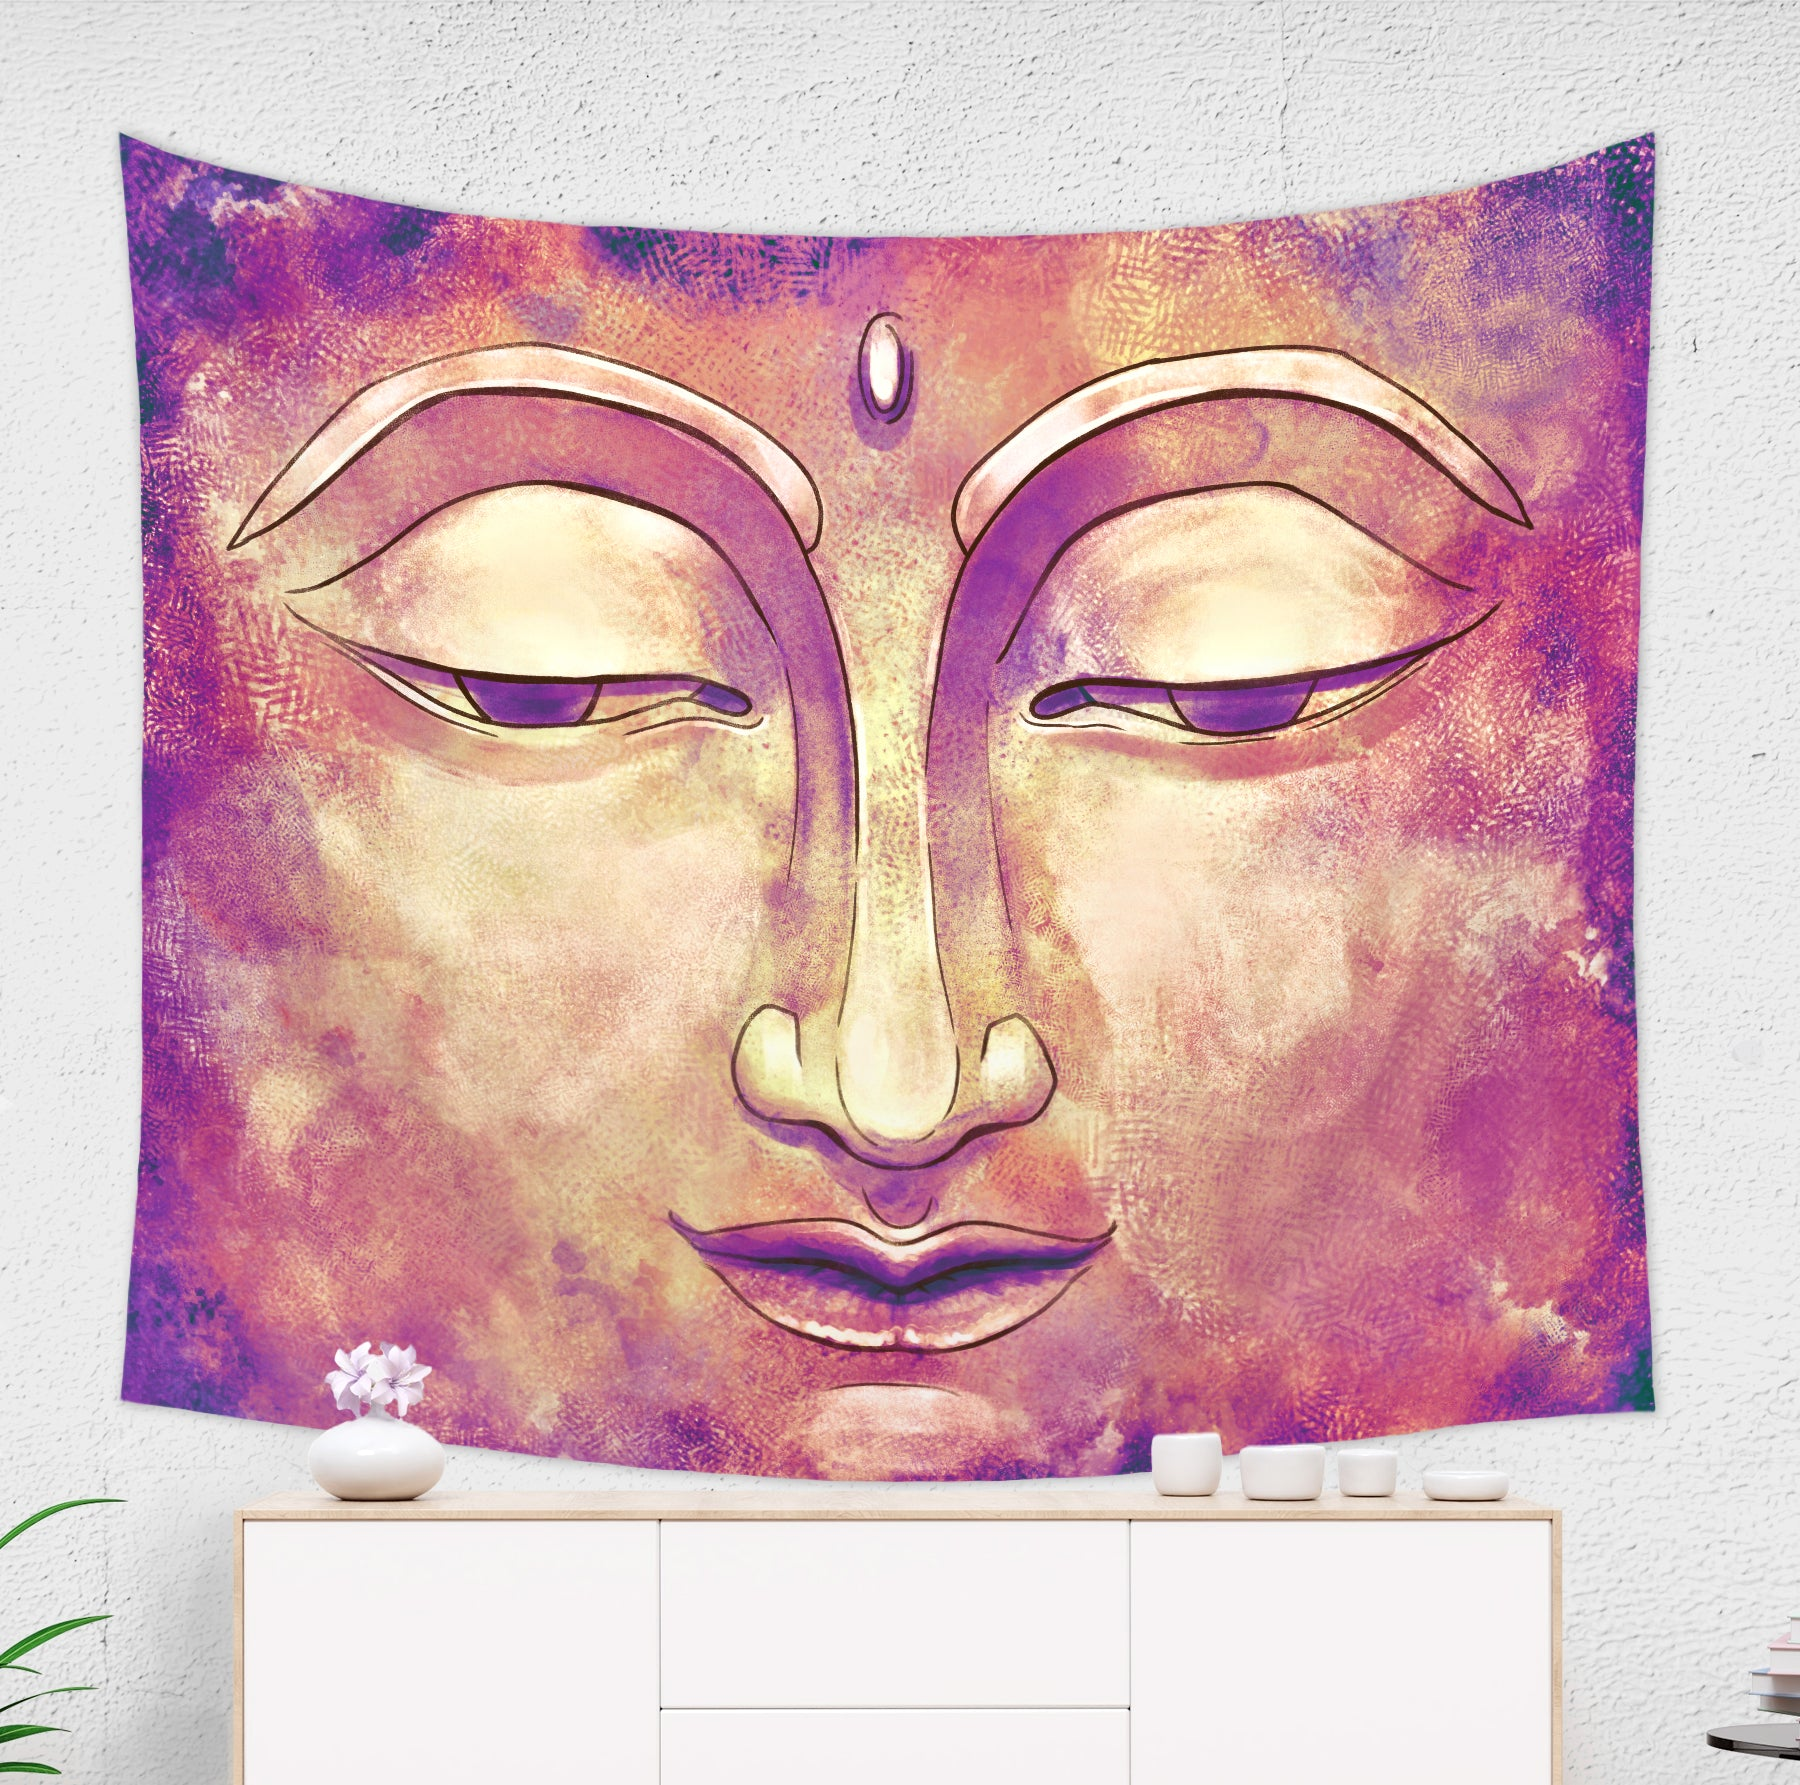 Gold and Pink Buddha Tapestry Rustic Zen Home Decor | Brandless Artist